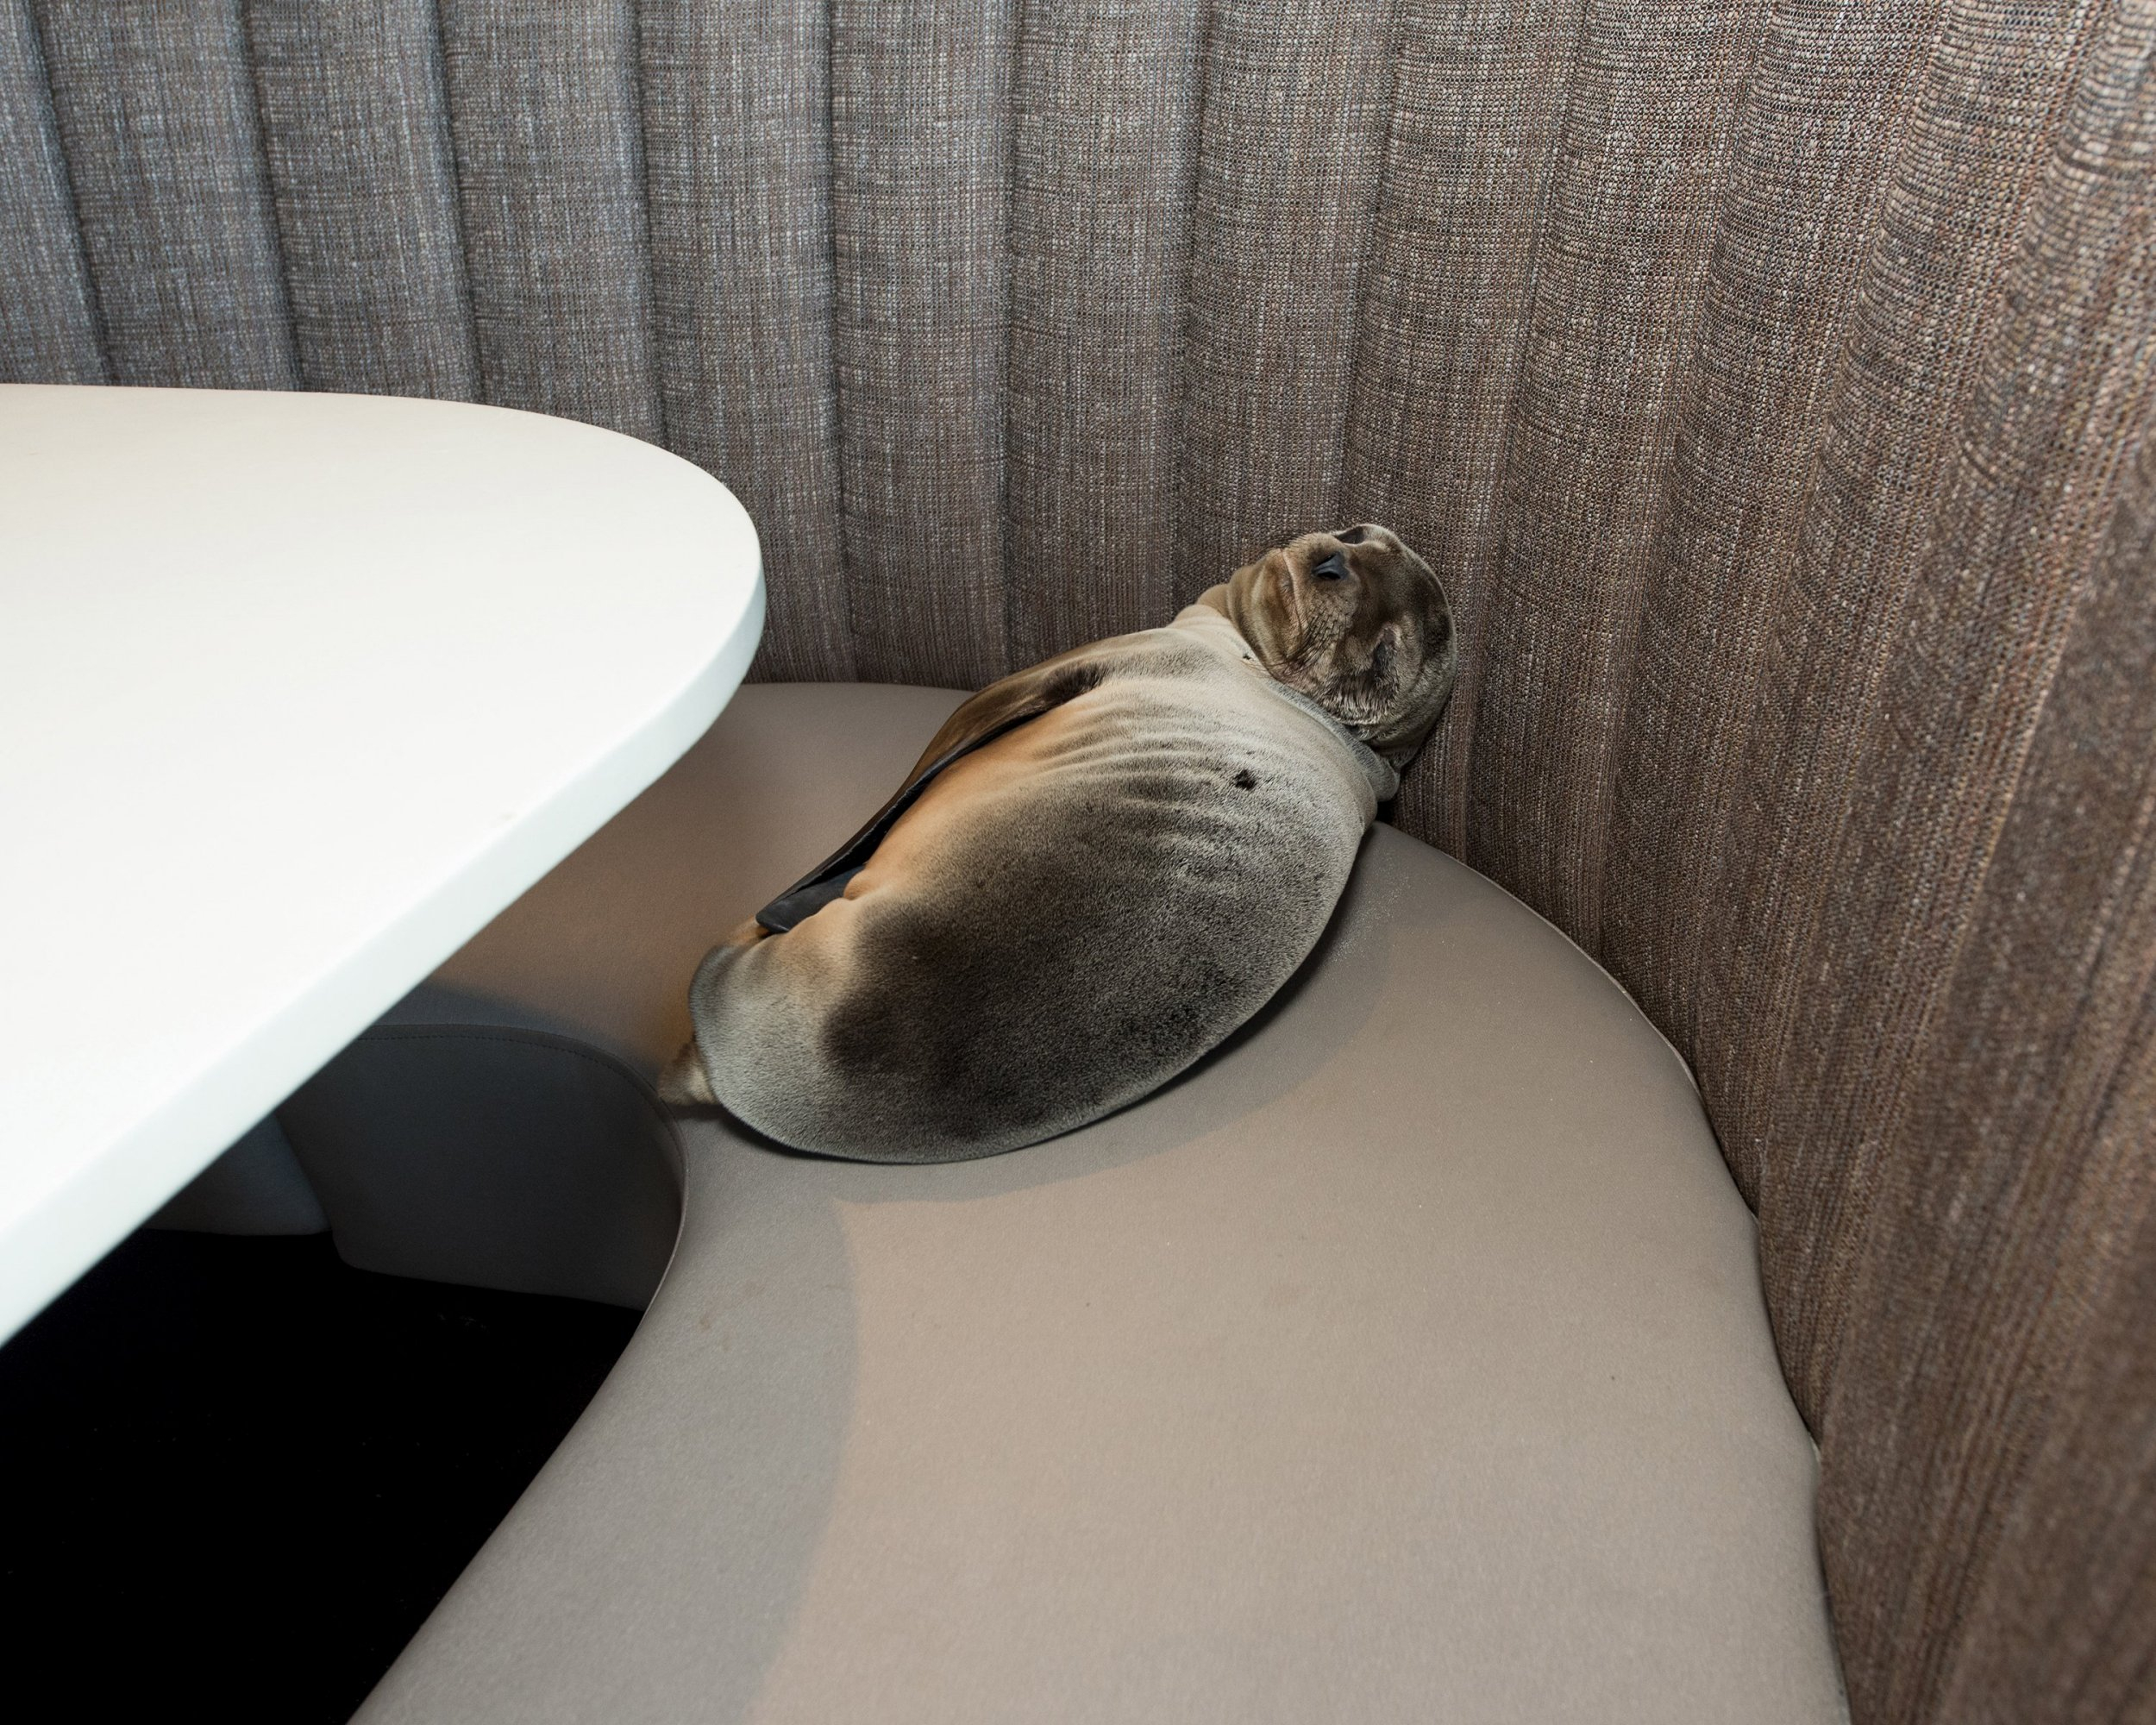 An eight-month-old female California sea lion pup is seen after being found sleeping in a booth in the dining room of the iconic Marine Room restaurant in La Jolla, California in this handout photo taken February 4, 2016. A rescue team from the SeaWorld San Diego theme park was called in to pull the barking mammal from the booth and place it in a net. The mammal was then taken to SeaWorld for care, said David Koontz, a spokesman for the tourist center. REUTERS/Mike Aguilera/SeaWorld¿Ø¬ø¬¿San Diego/Handout via Reuters ATTENTION EDITORS - THIS PICTURE WAS PROVIDED BY A THIRD PARTY. REUTERS IS UNABLE TO INDEPENDENTLY VERIFY THE AUTHENTICITY, CONTENT, LOCATION OR DATE OF THIS IMAGE. THIS PICTURE IS DISTRIBUTED EXACTLY AS RECEIVED BY REUTERS, AS A SERVICE TO CLIENTS. EDITORIAL USE ONLY. NO RESALES. NO ARCHIVE. TPX IMAGES OF THE DAY